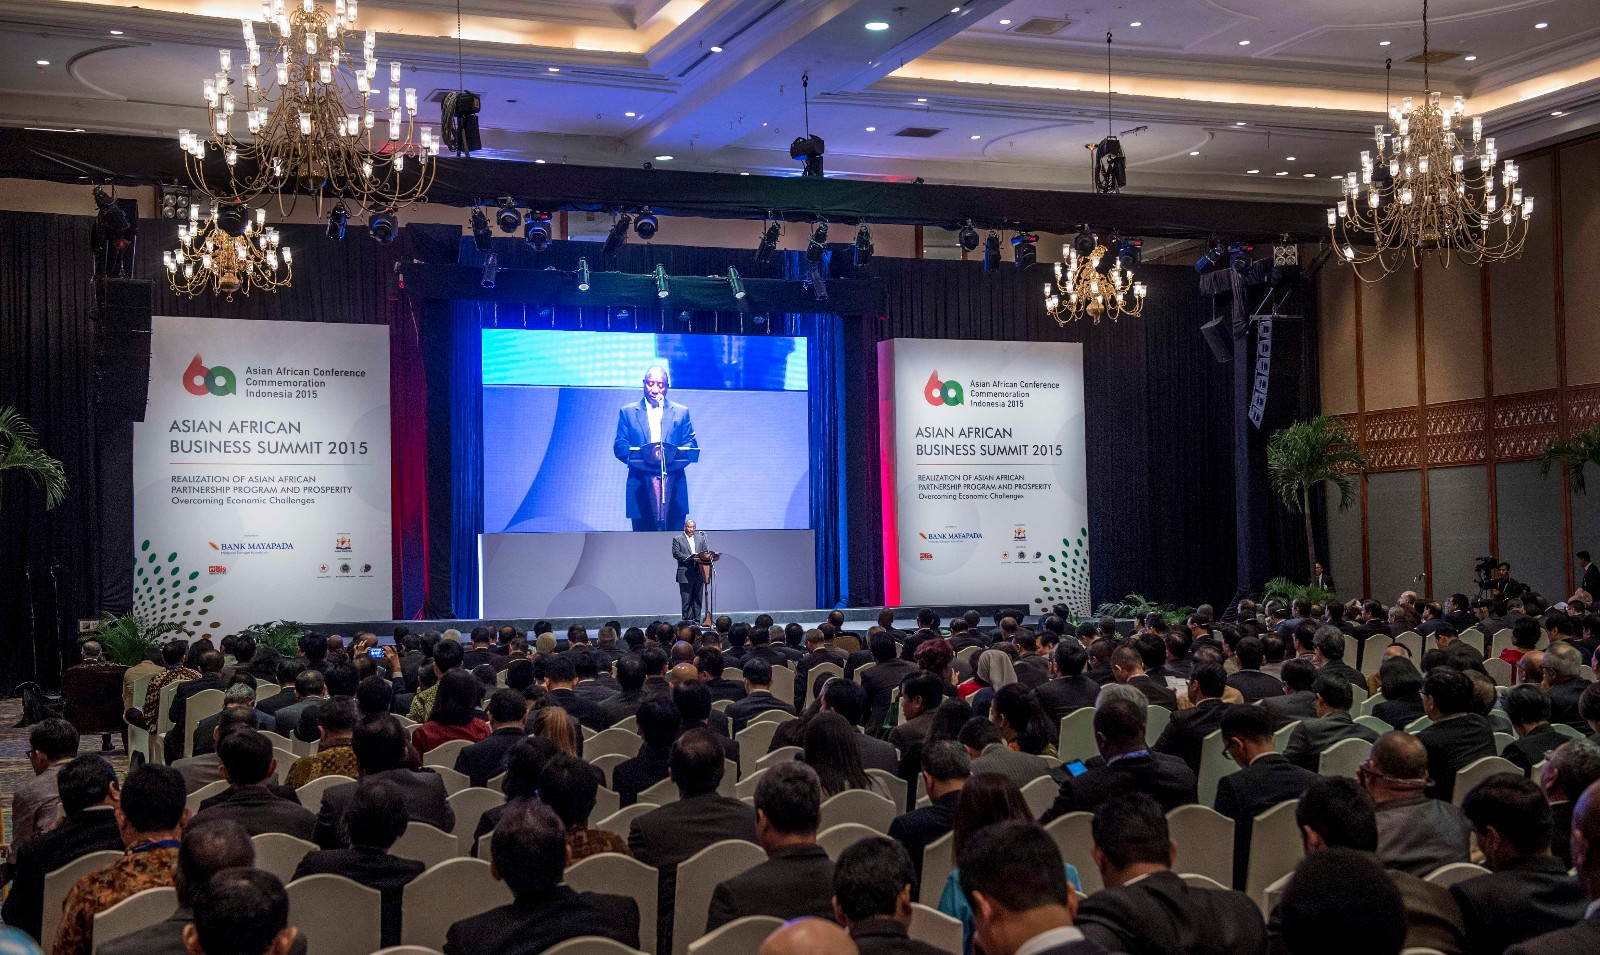 Asian African Business Summit launched to boost partnership